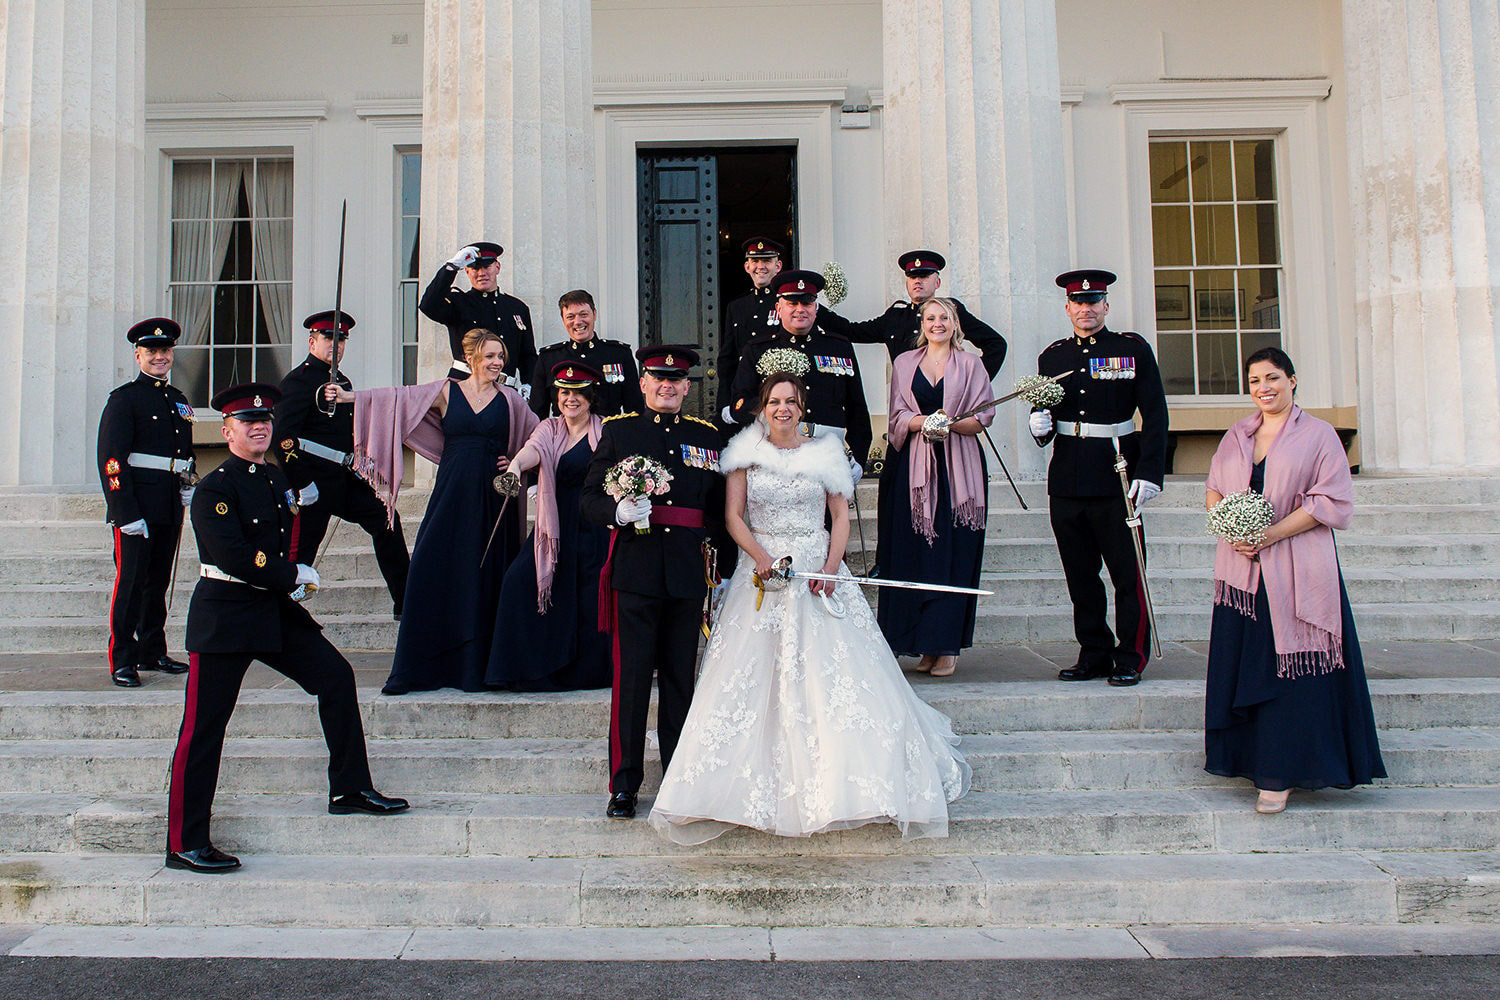 old-college-steps-Sandhurst-wedding-photos.jpg